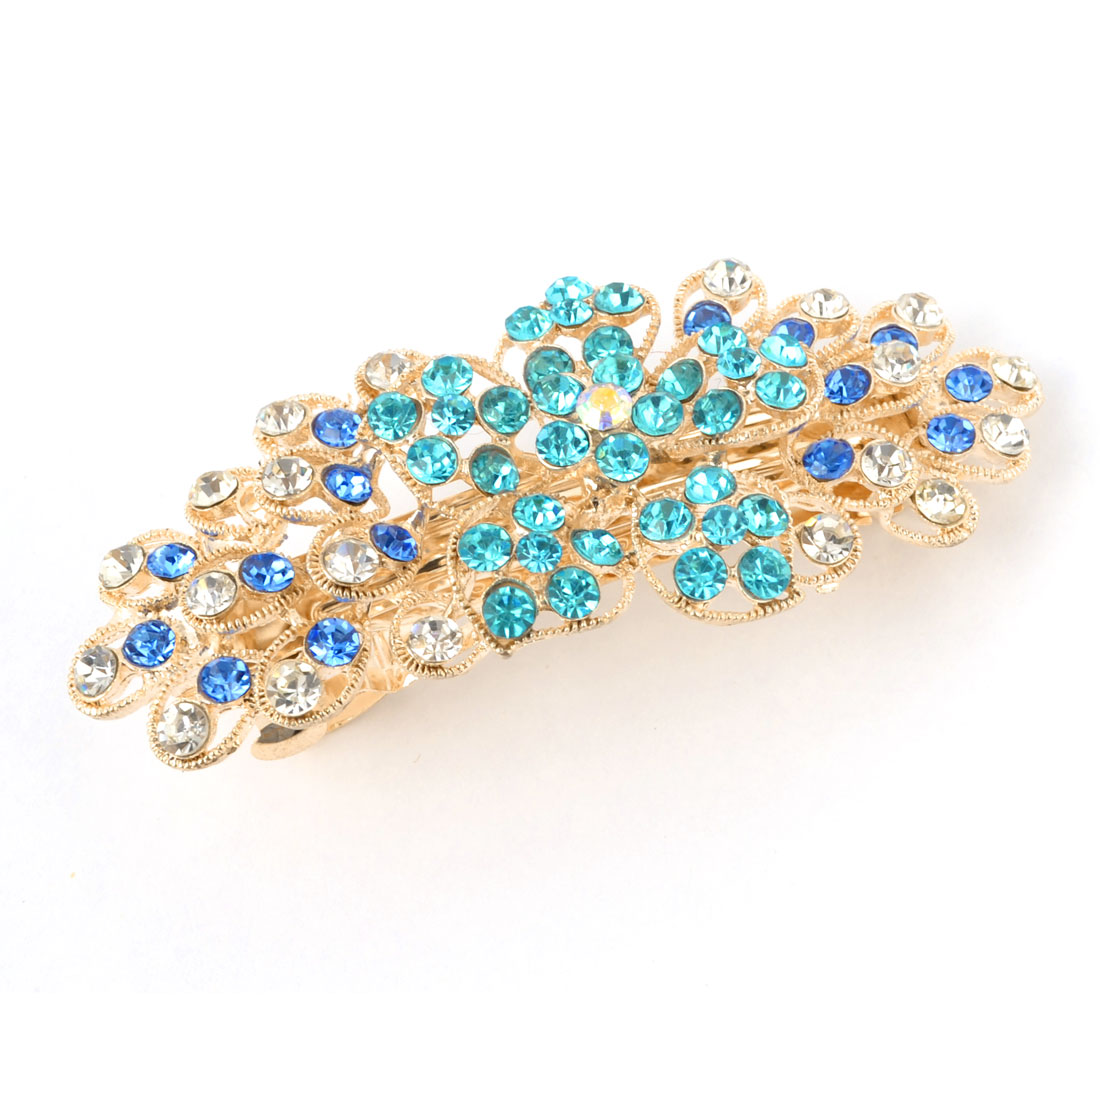 Blue Teal Glitter Rhinestone Detail Flower Design Gold Tone Metal French Hair Clip Barrette for Women